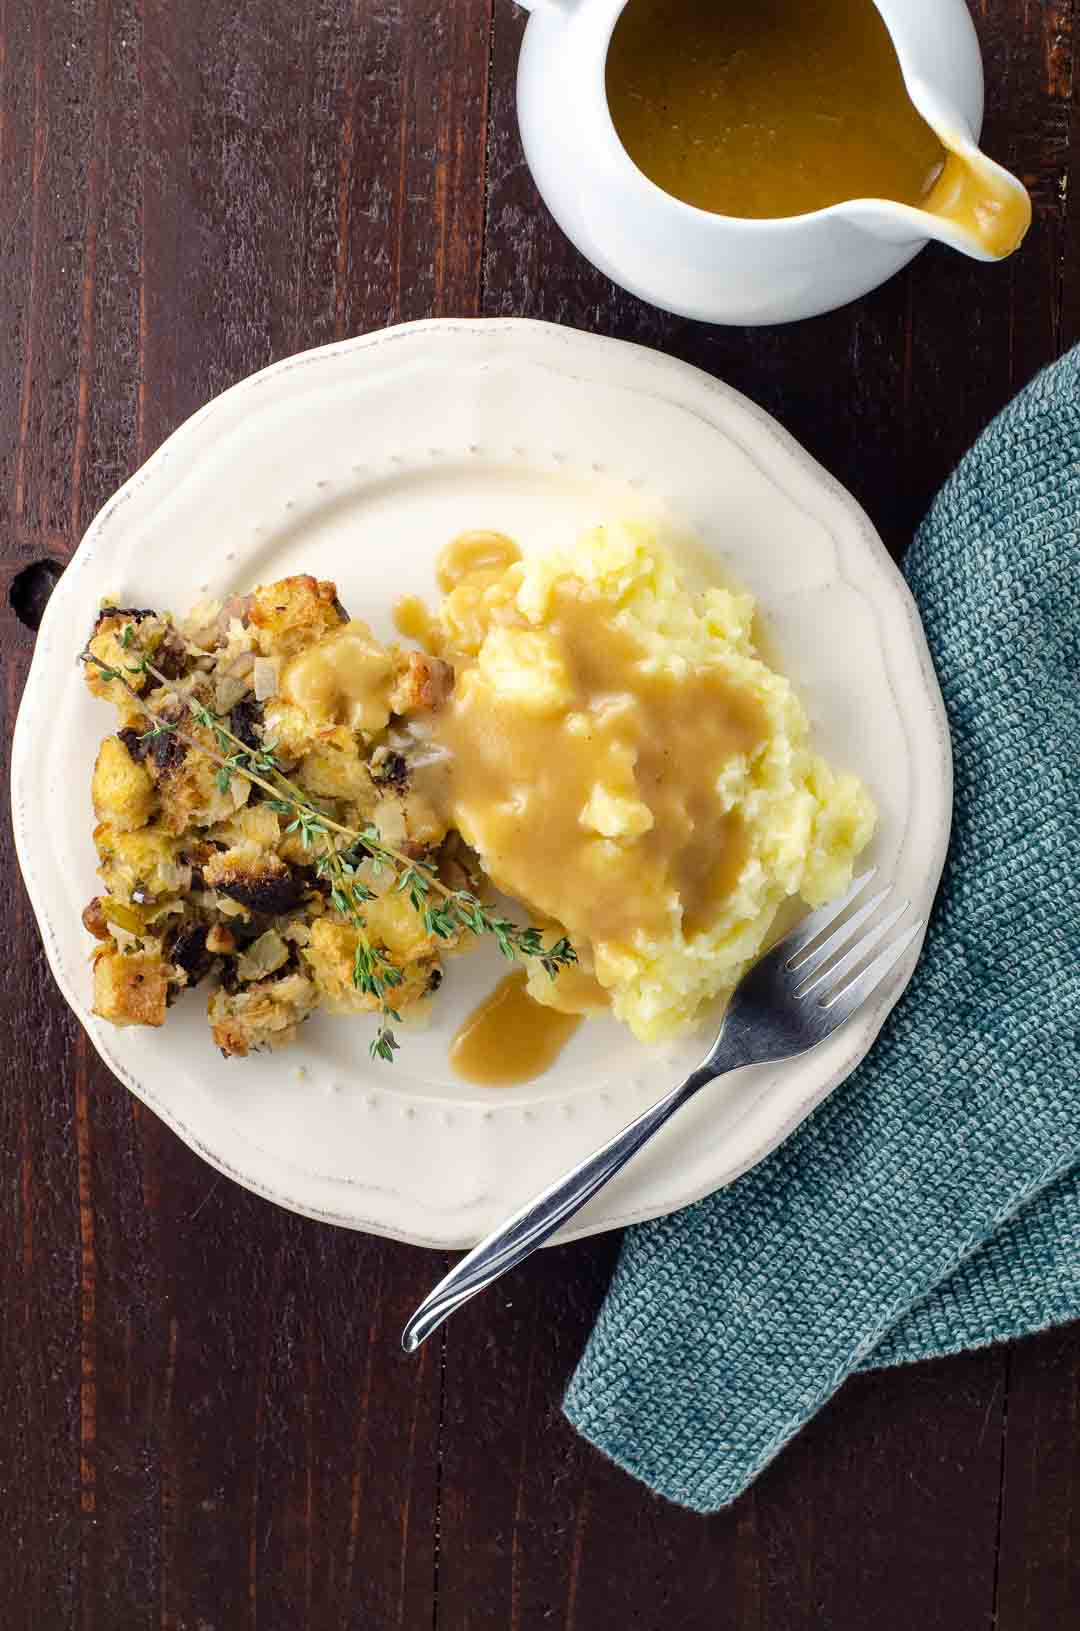 vegetarian gravy over a plate of mashed potatoes and stuffing